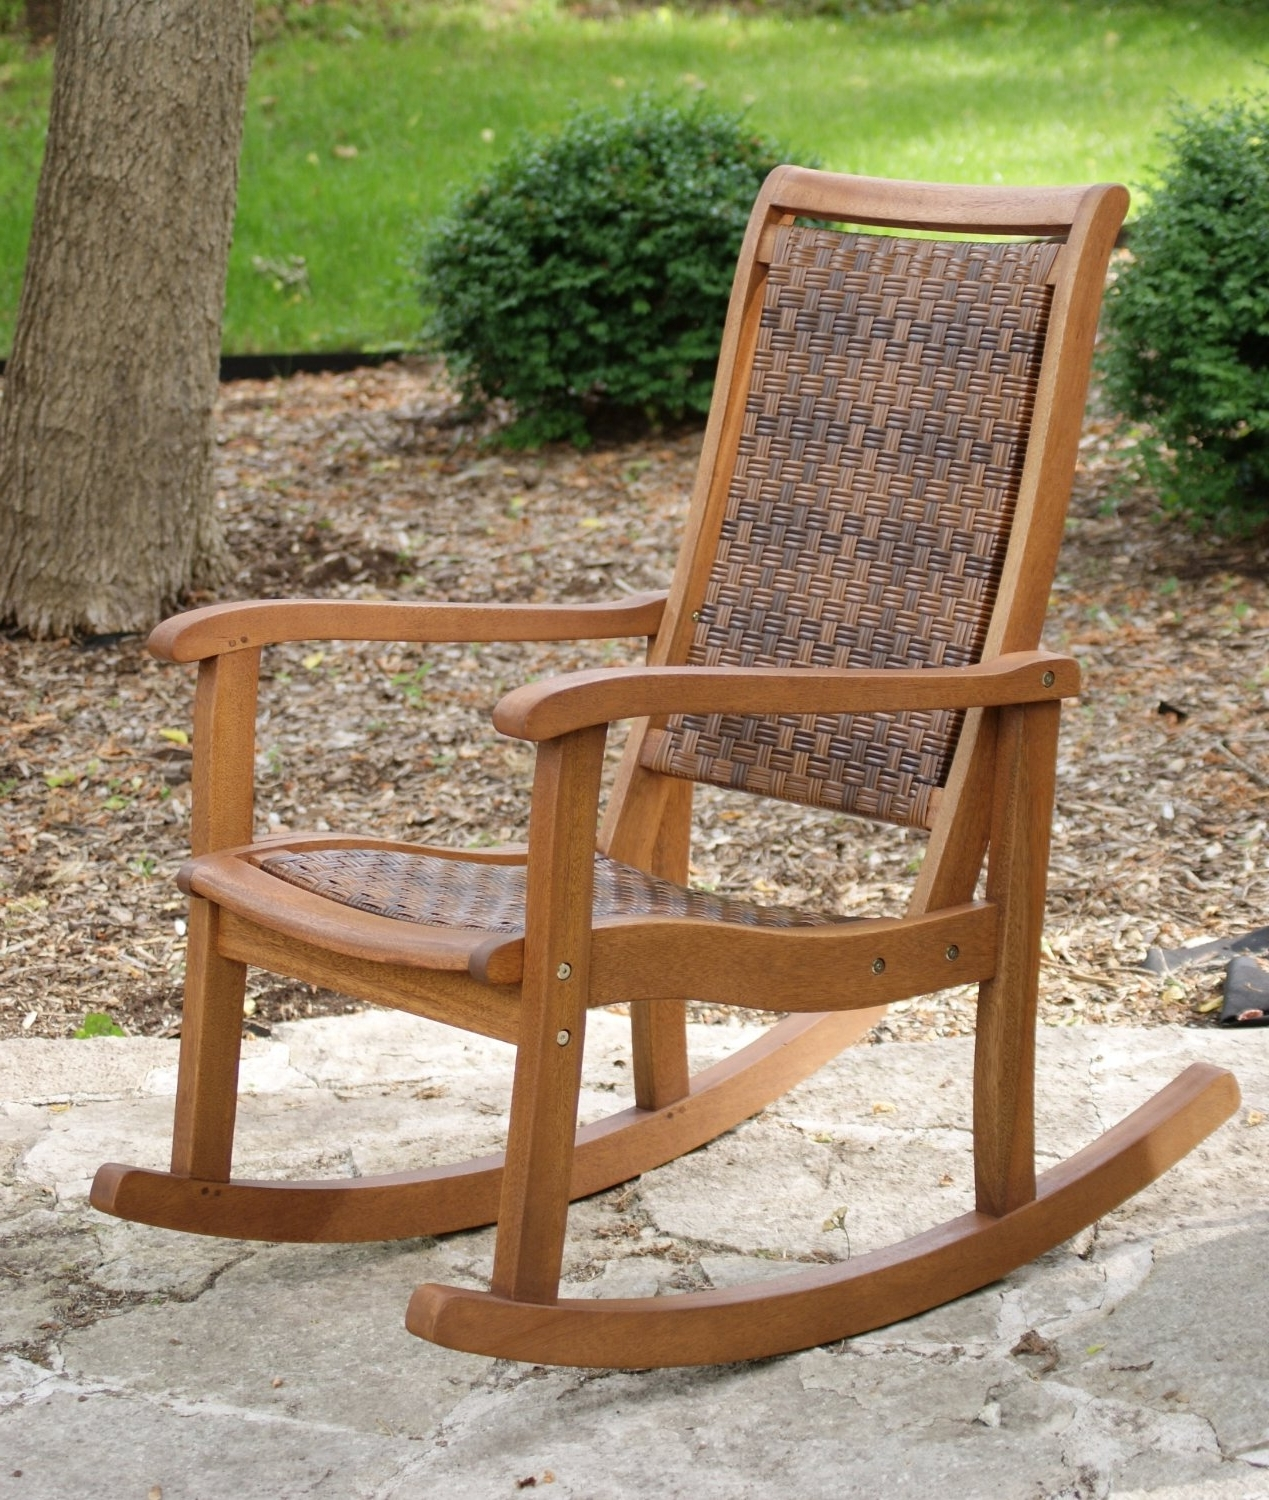 Most Recent Wicker Rocking Chairs For Outdoors In Great Rocking Patio Chairs Outdoor Wicker Rocking Chairs Patio (View 18 of 20)